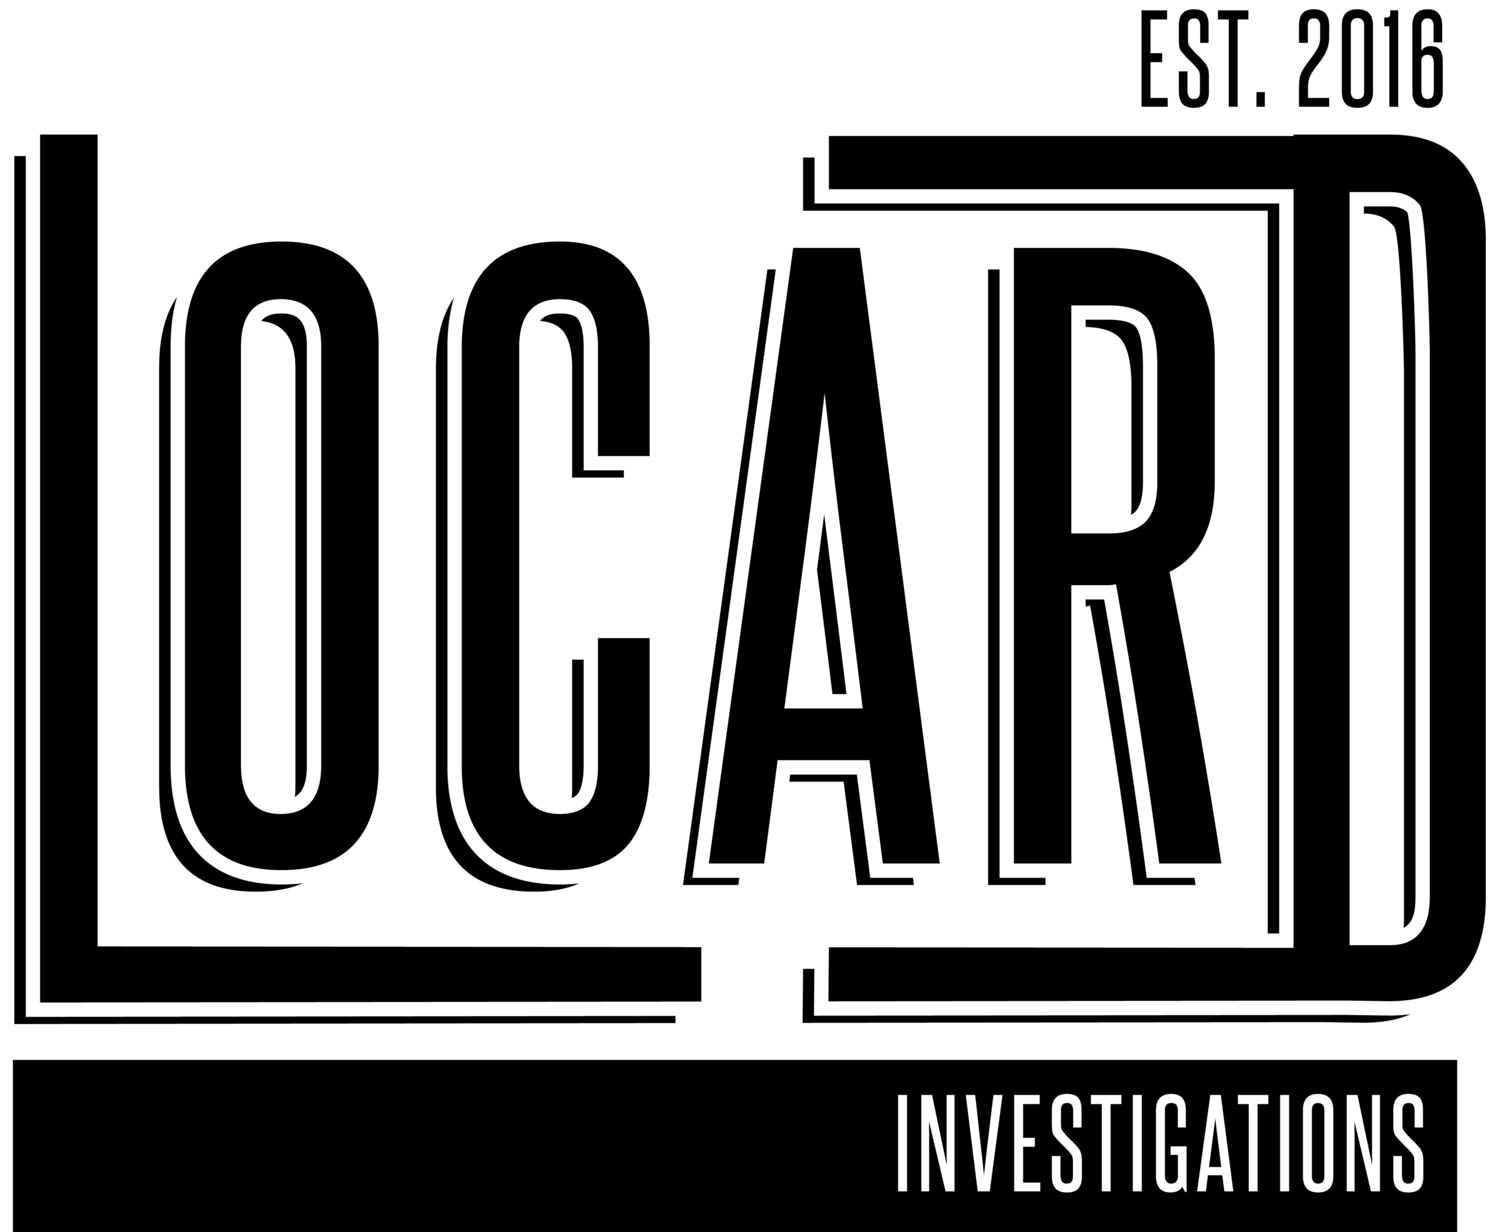 LOCARDS INVESTIGATIONS